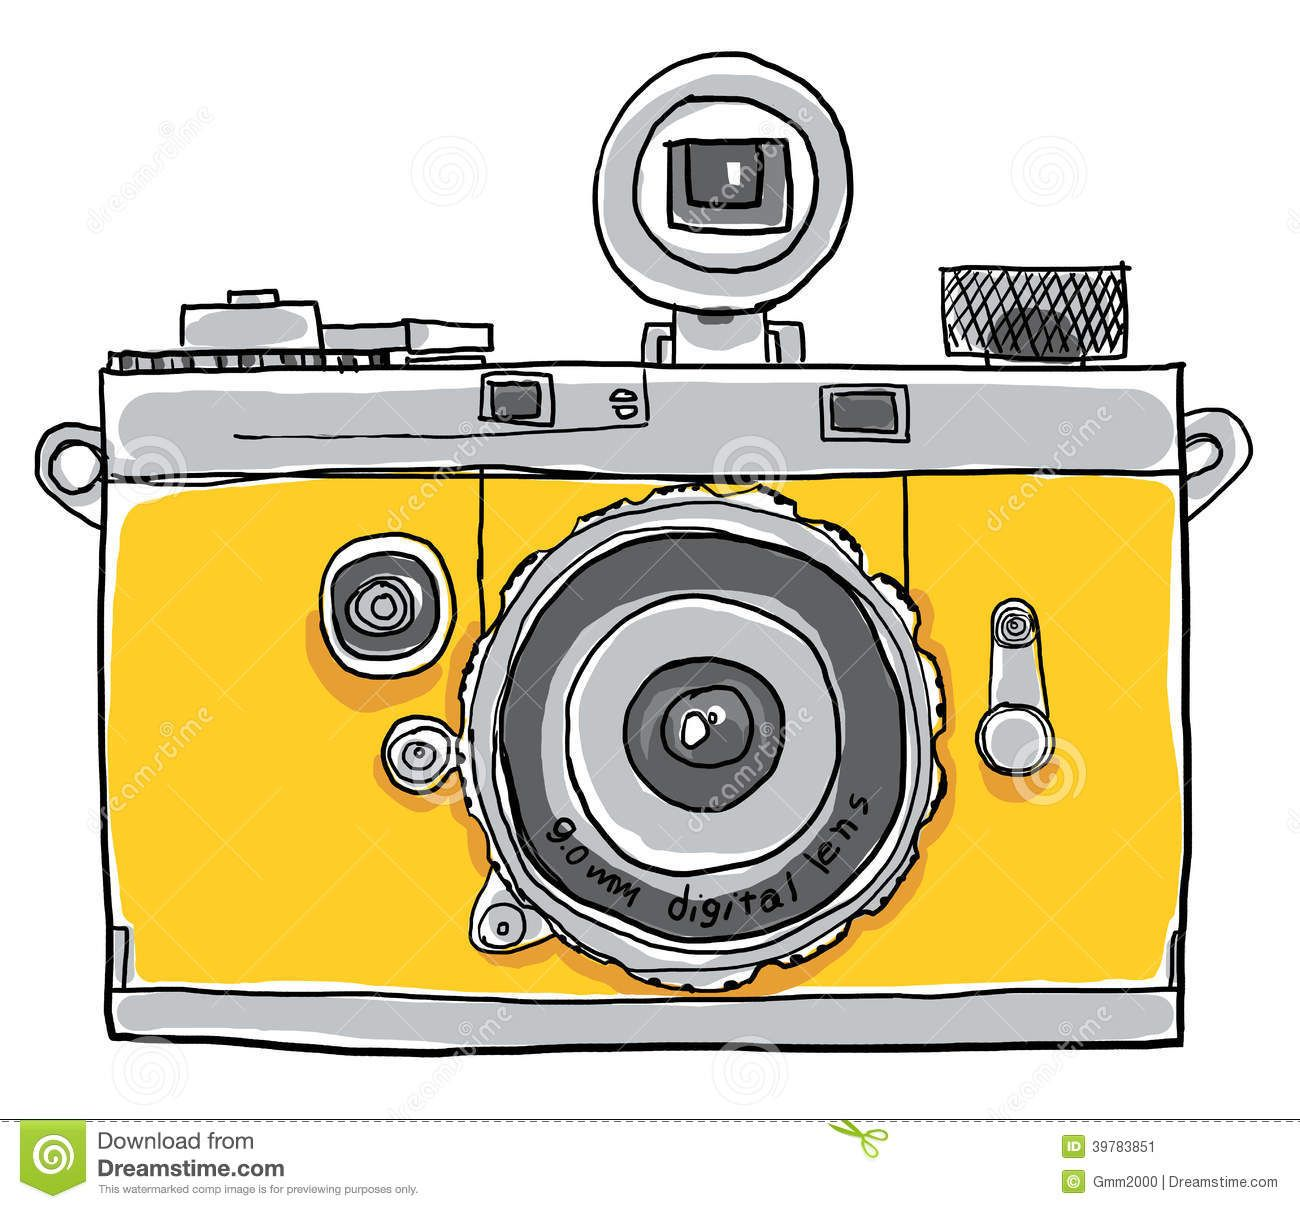 Line Drawing Camera : Yellow camera vintage painting line art camaras